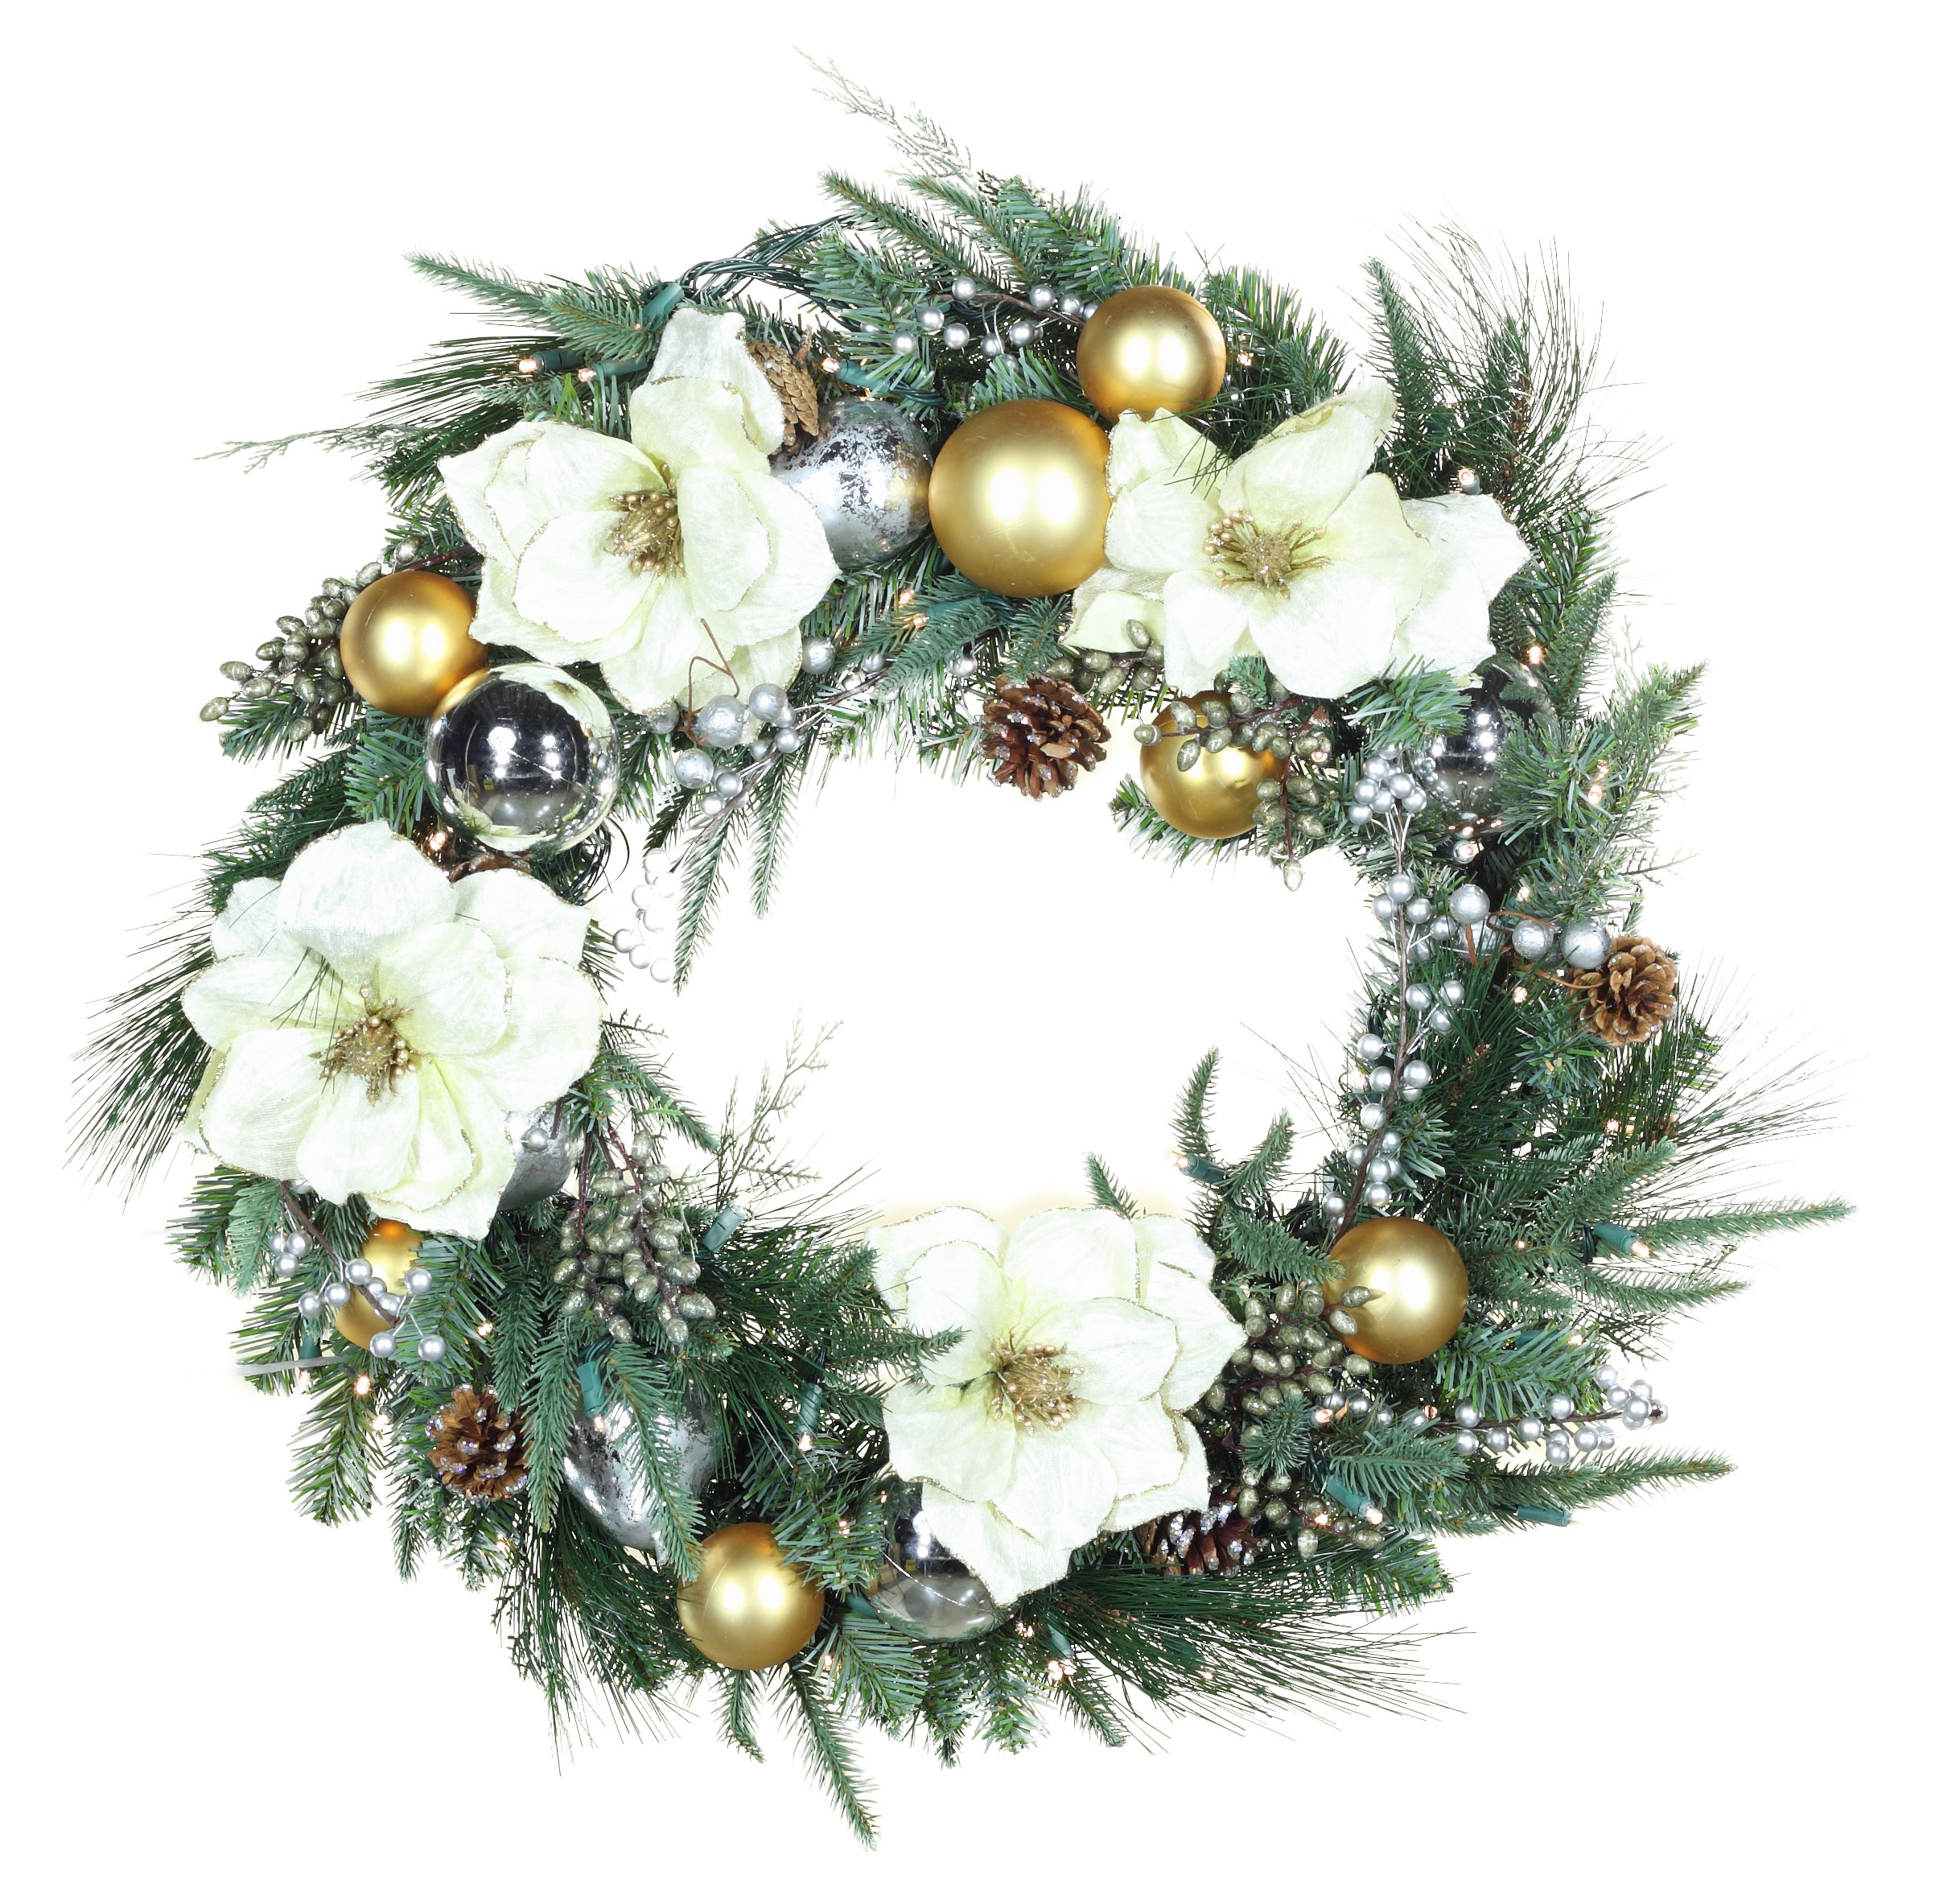 Decorative Wreaths - Aspen Silver Battery Operated LED Wreath, Warm ...